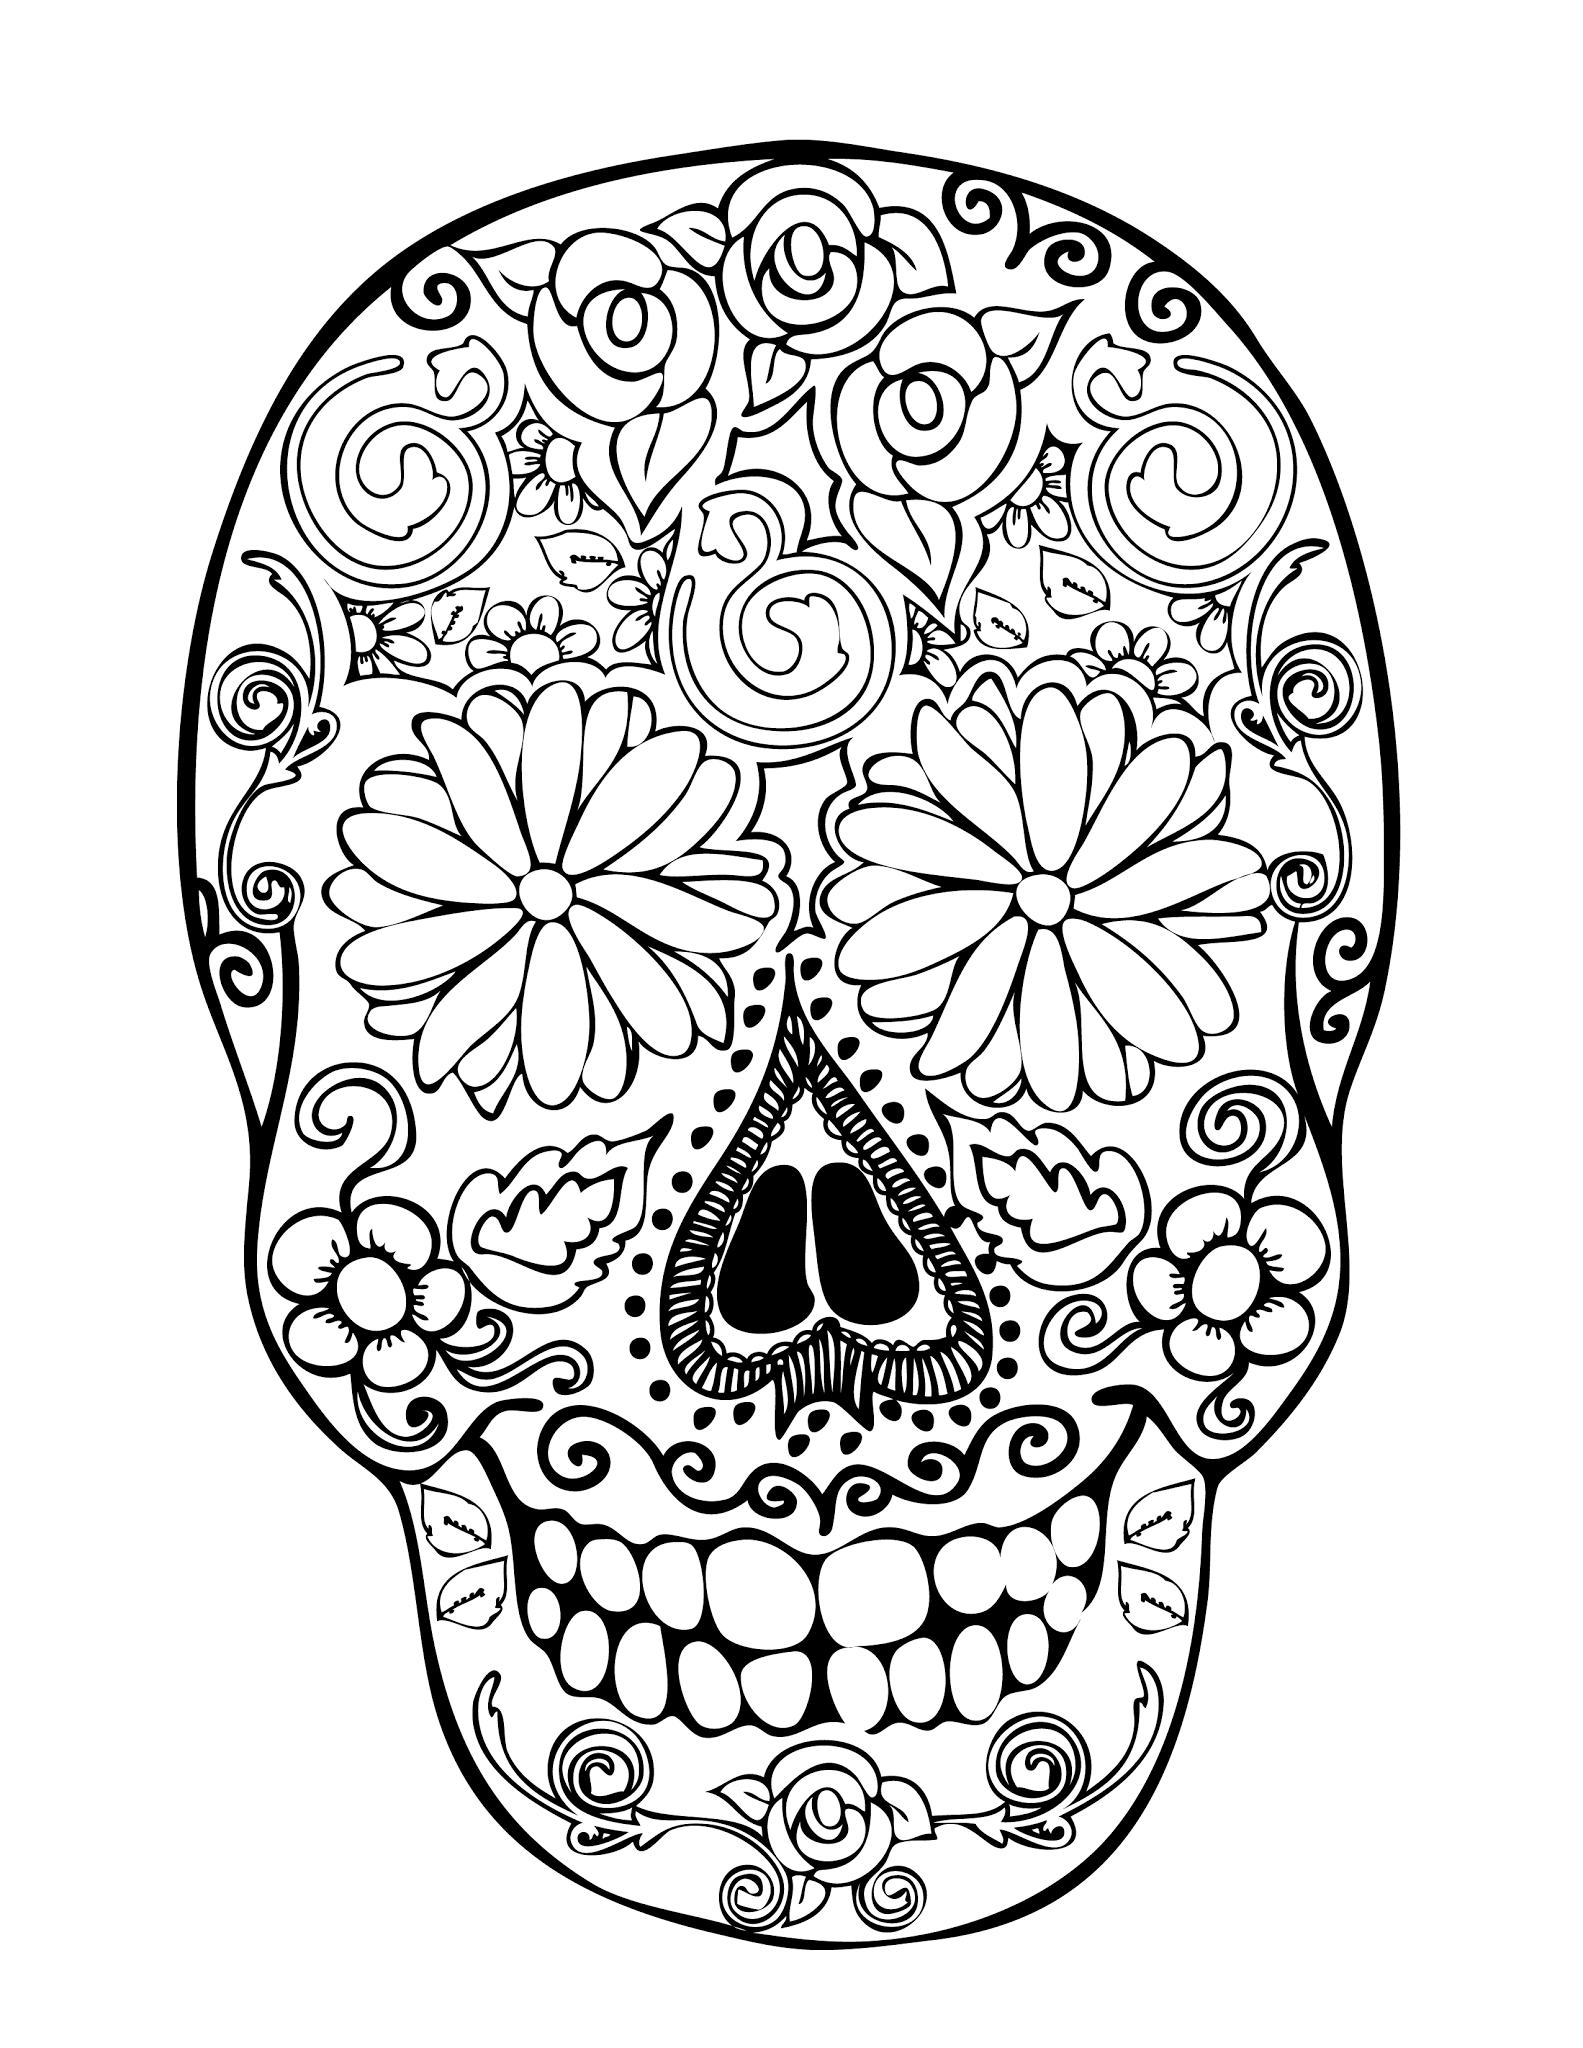 Sugar Skull Coloring Pages Pdf Coloring Page Skull Coloring Pages Coloring Pages Coloring Pages To Print